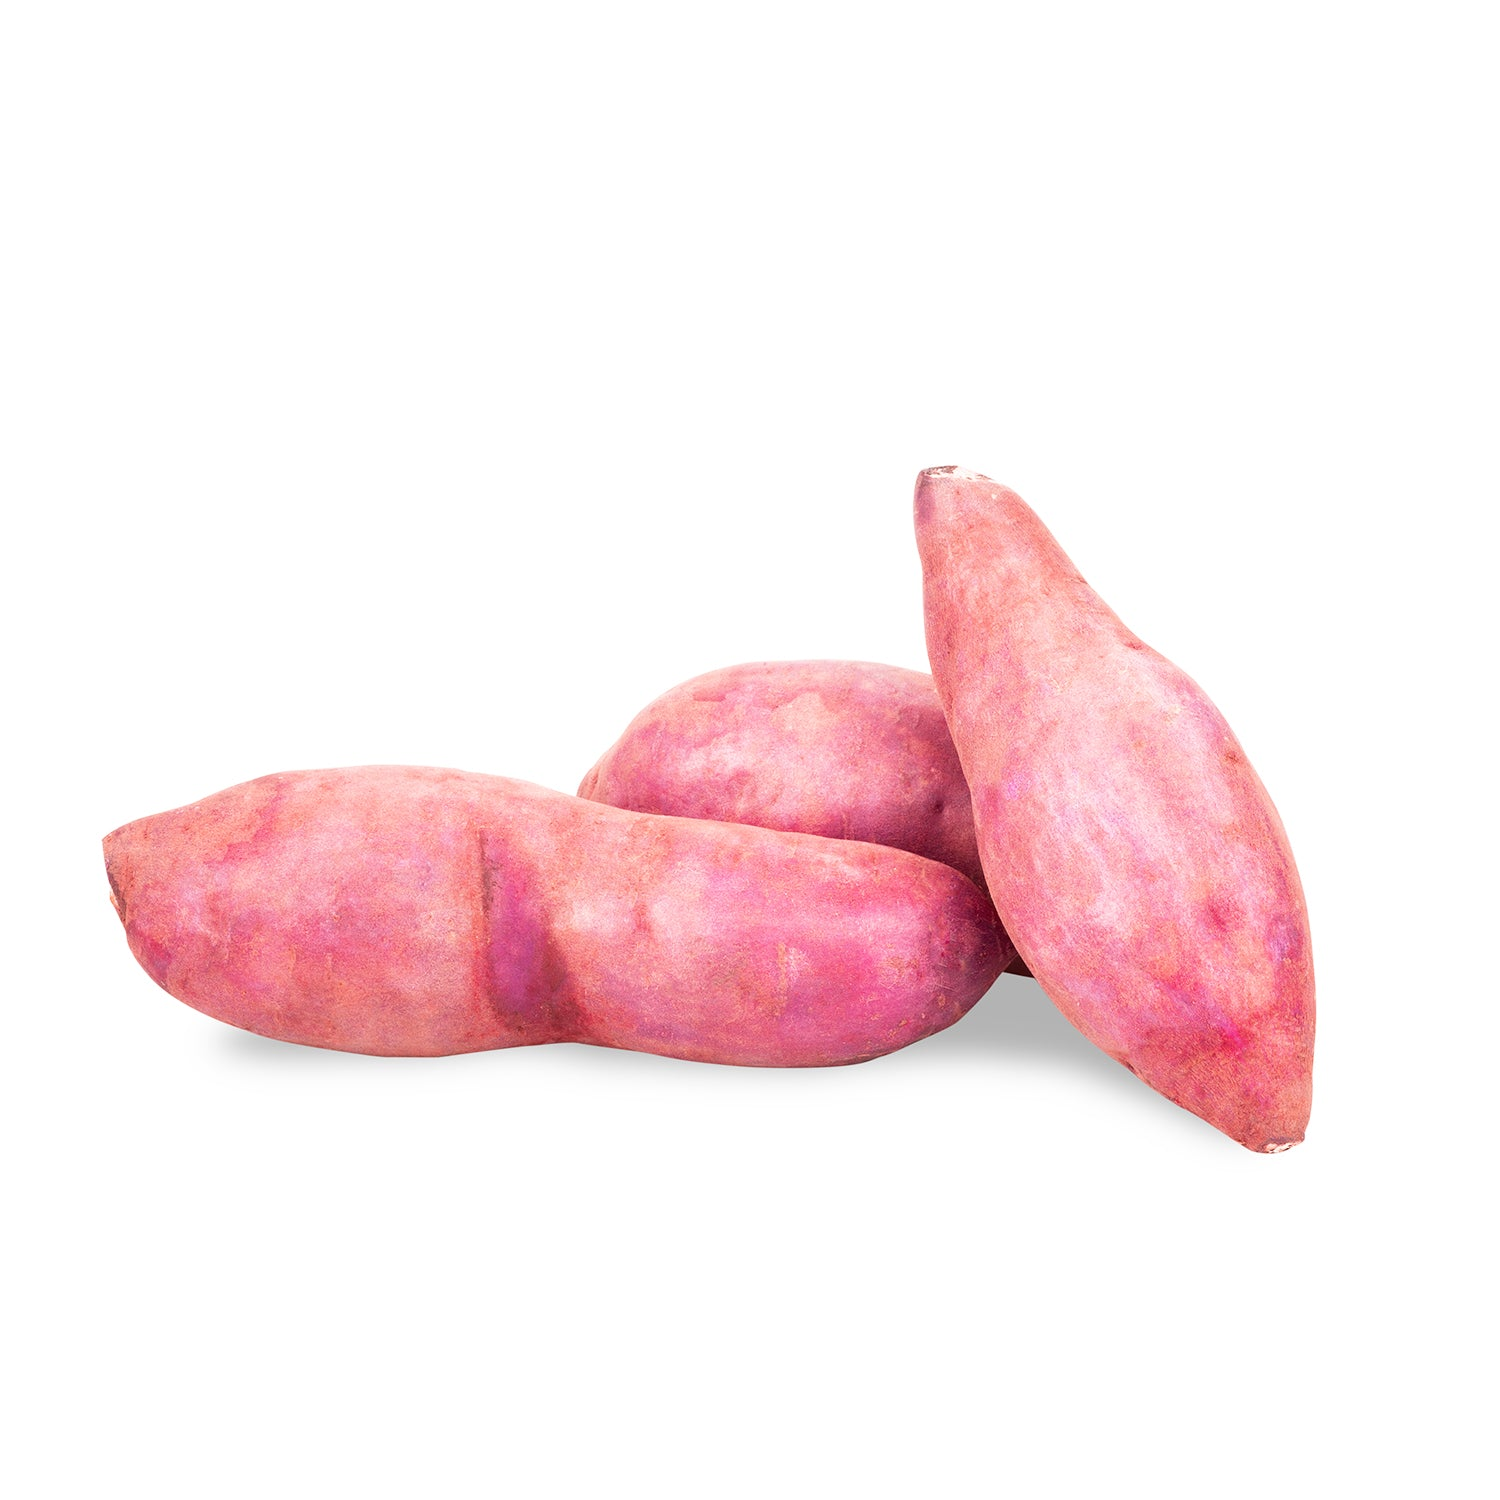 Japanese Sweet Potato (1.8-2.3lbs)